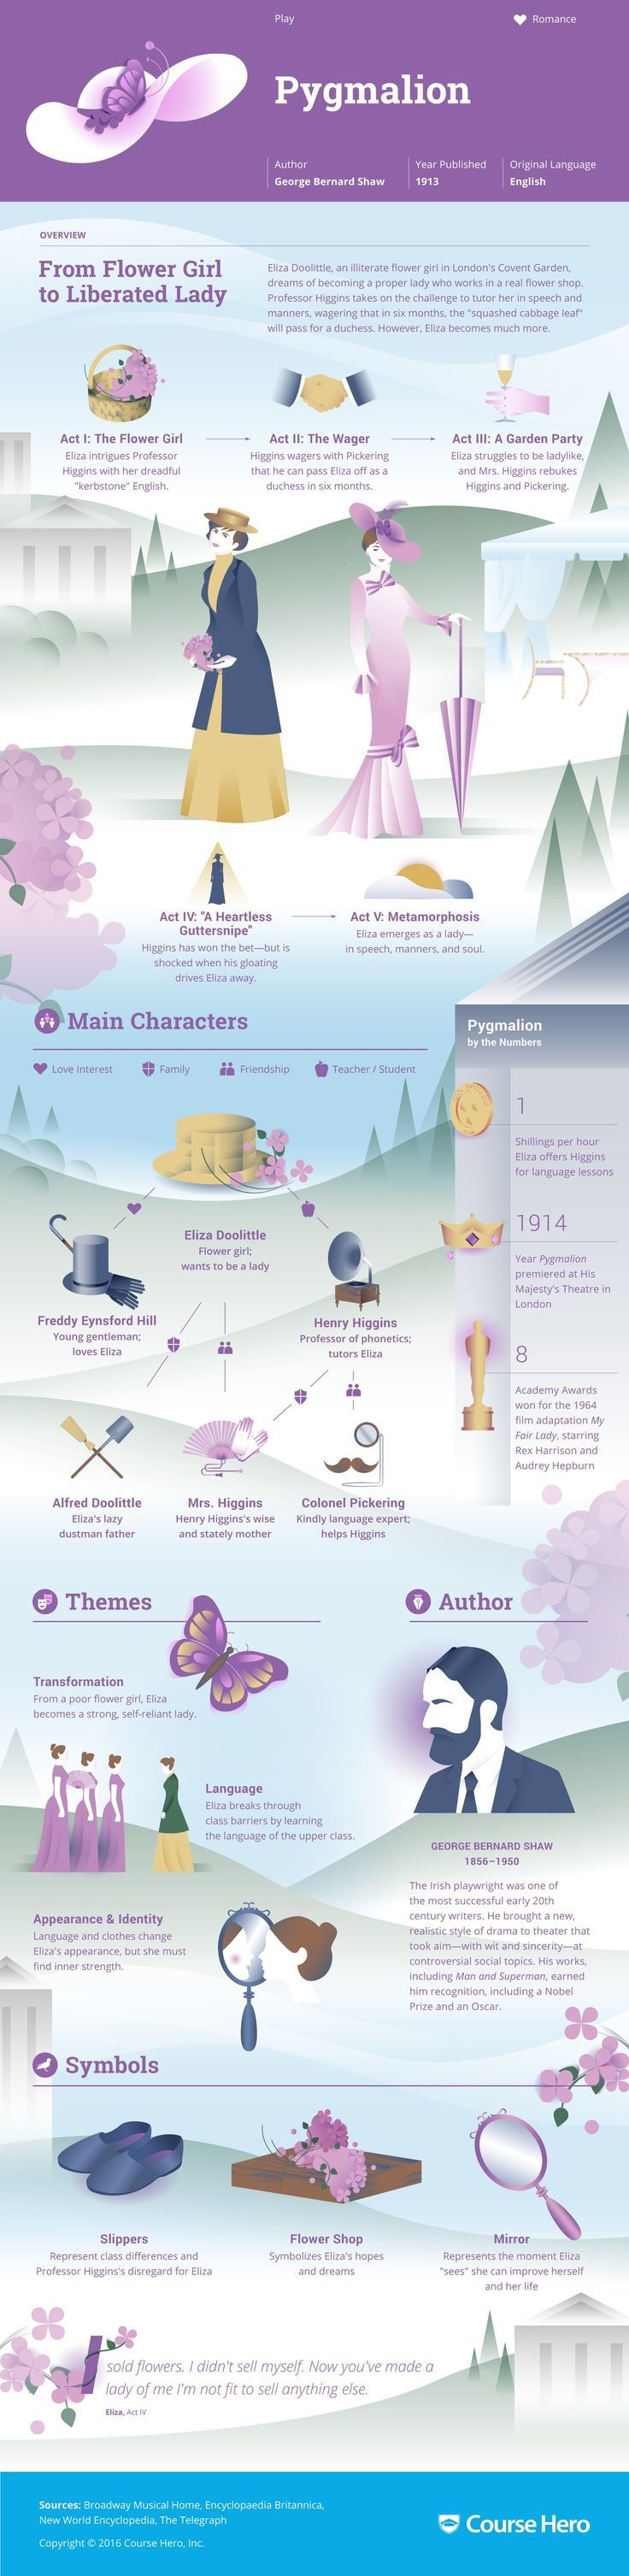 Pygmalion Infographic | Course Hero